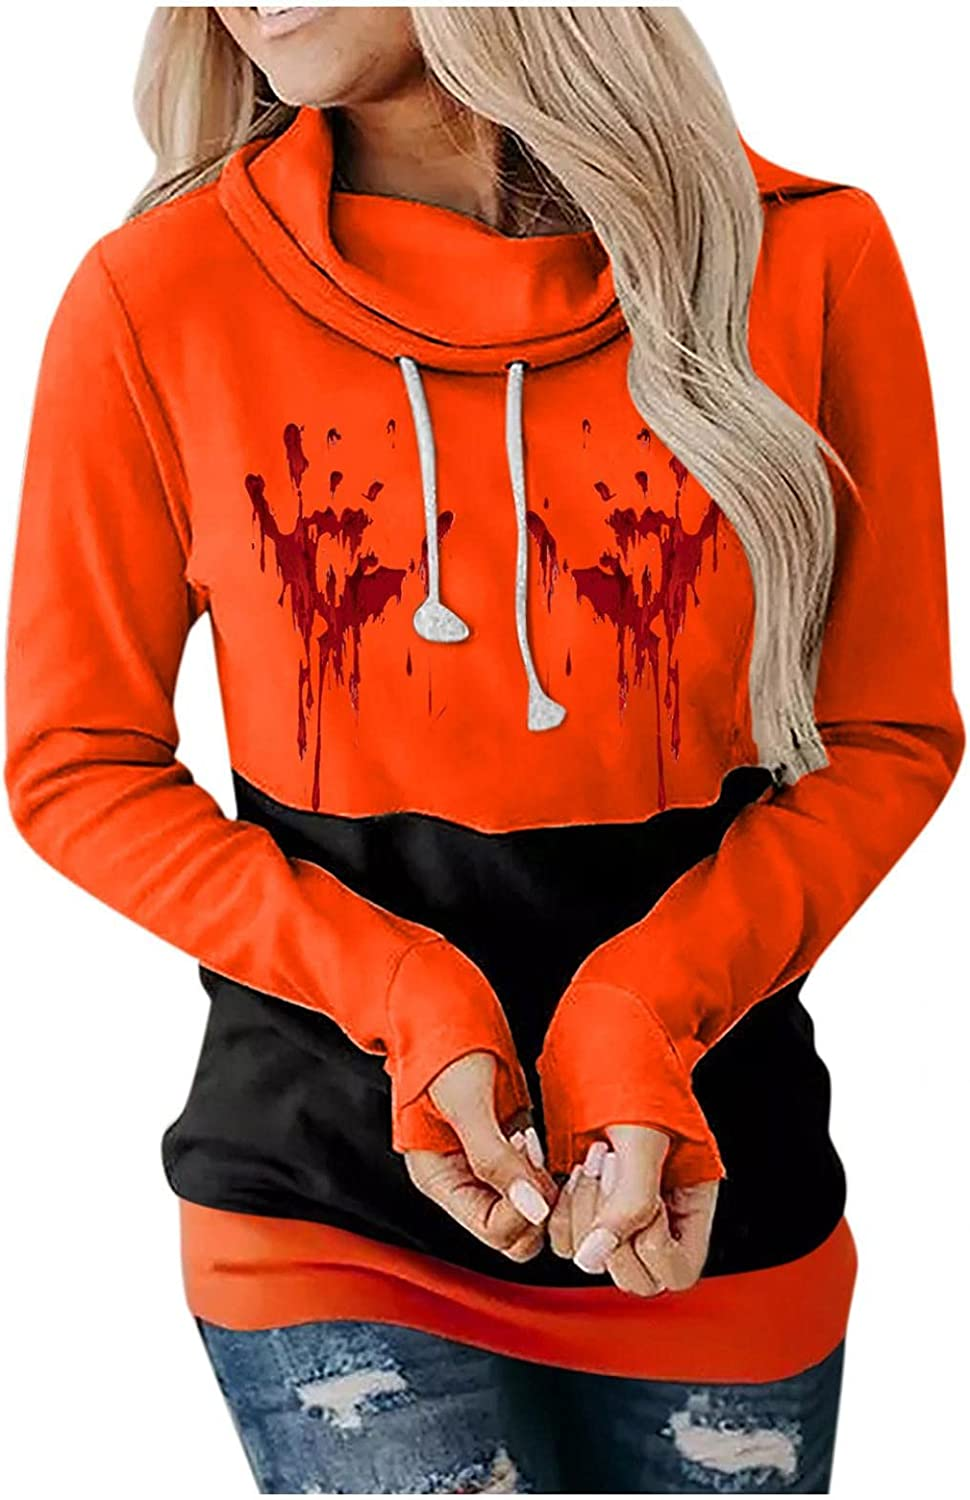 Jaqqra Halloween Sweatshirts for Women Printed Festival Casual Long Sleeve Hooded Blouse Drawstring Pullover Shirts